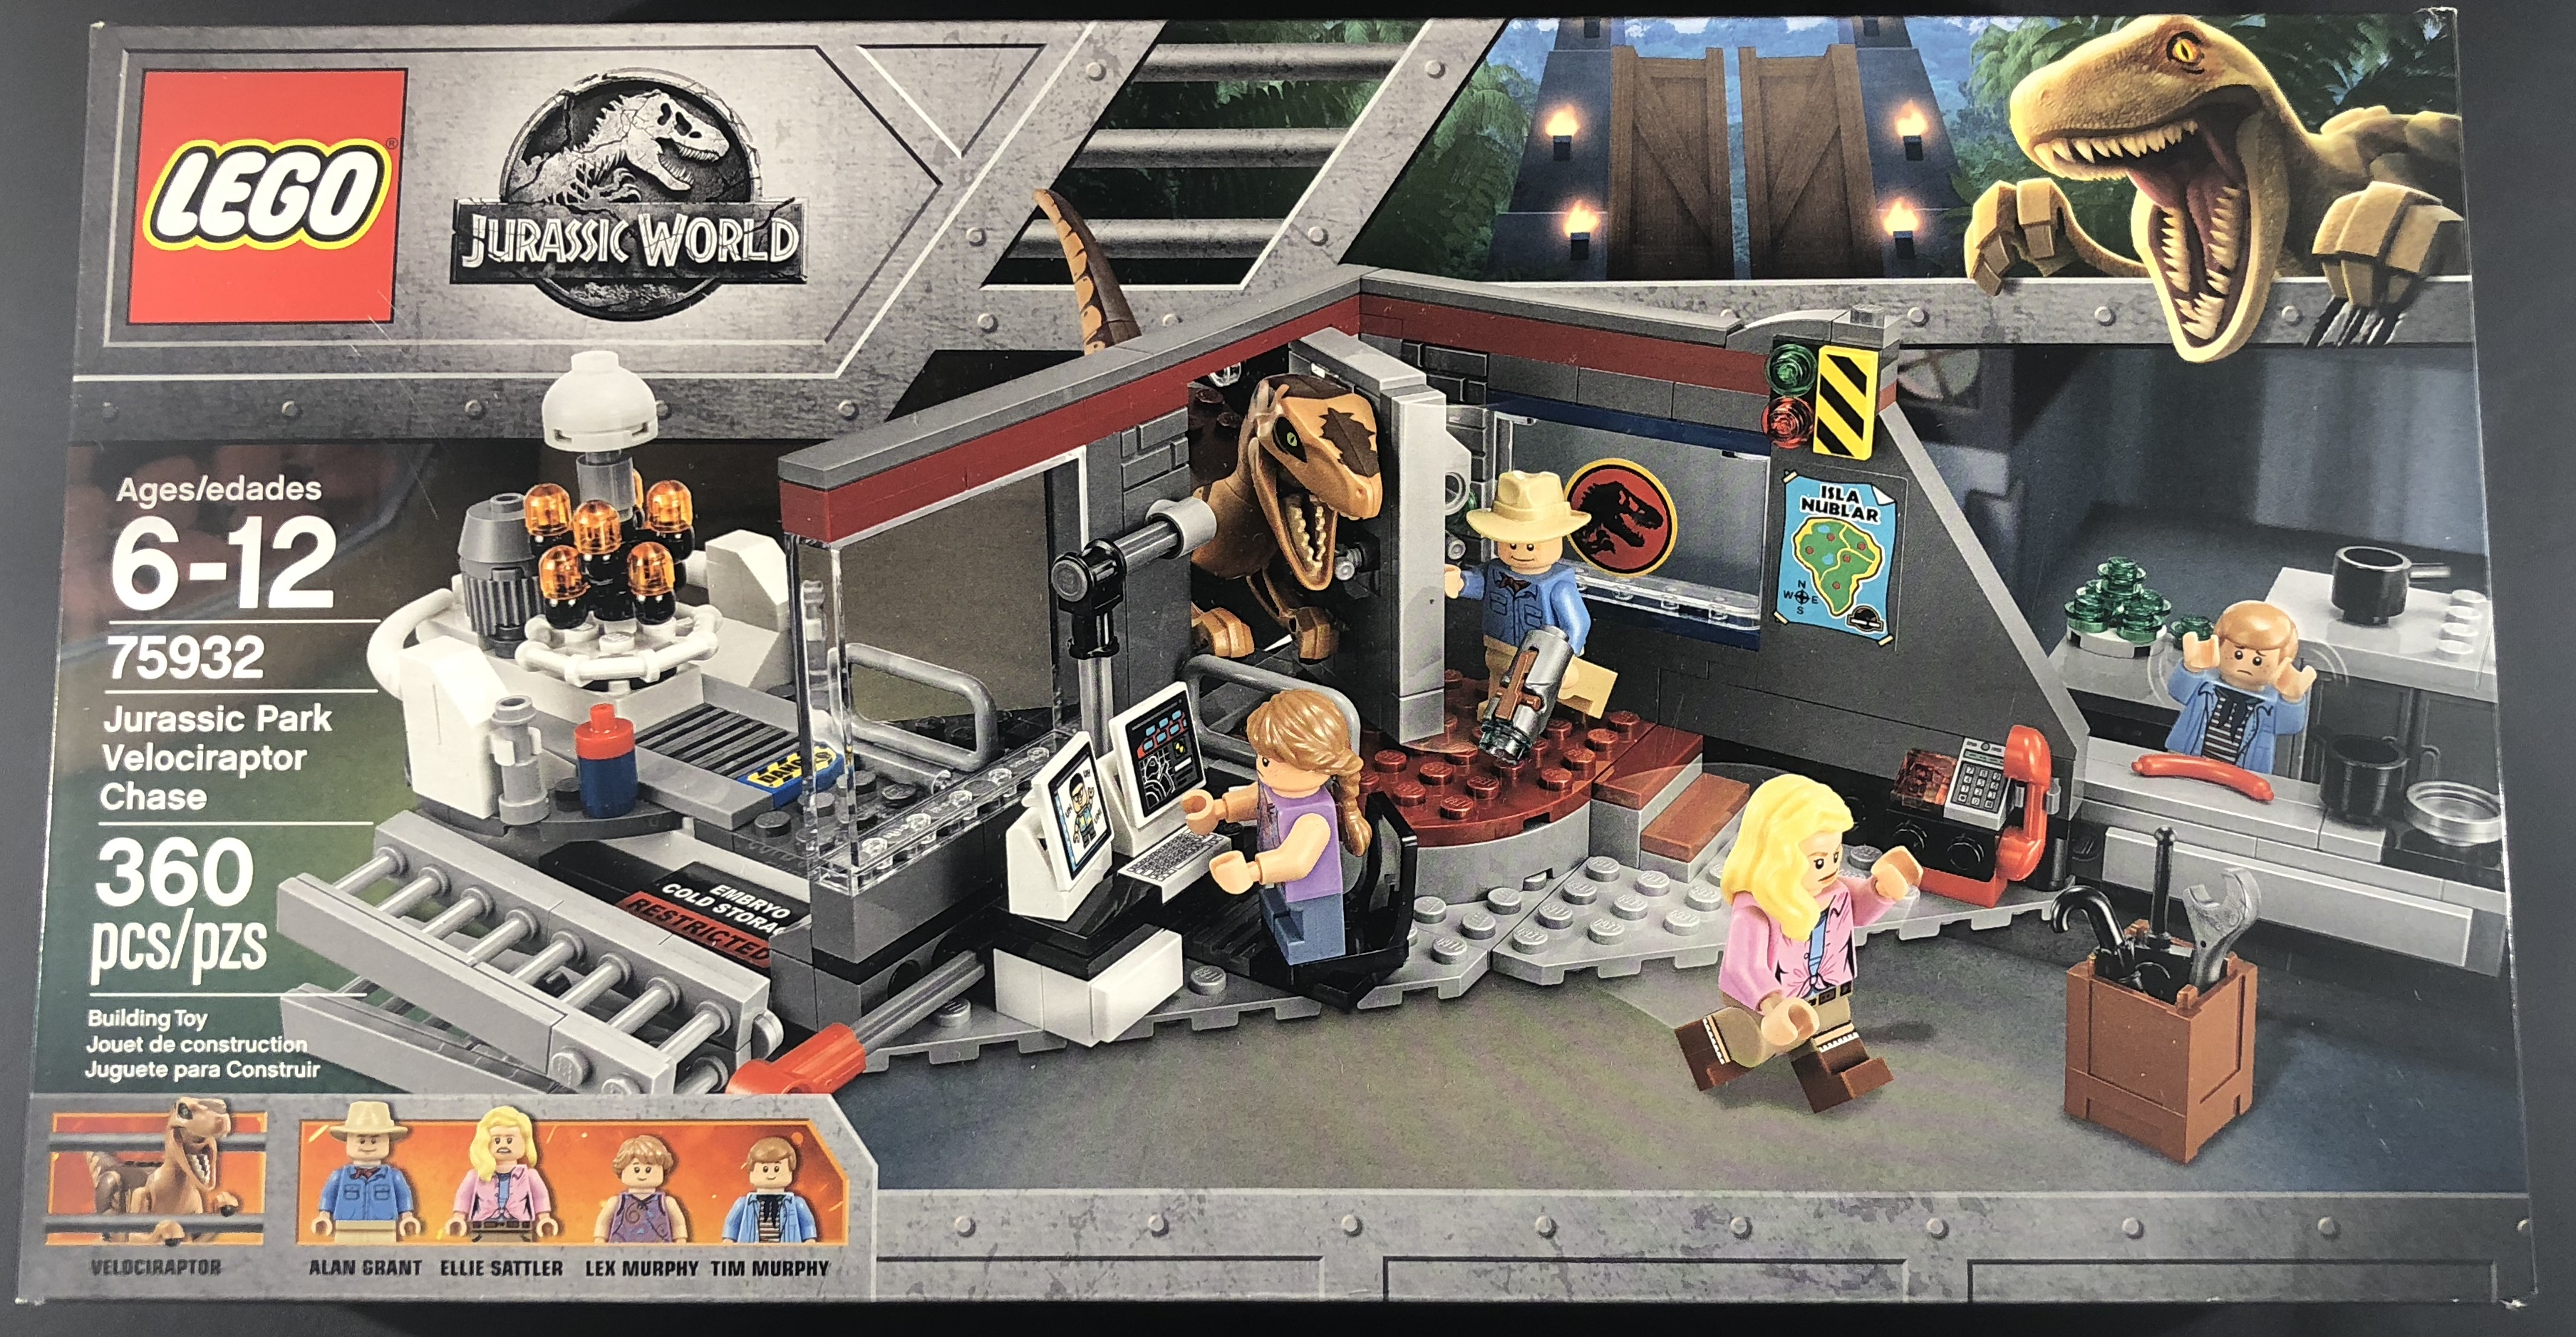 REVIEW: LEGO Jurassic World – Set 75932 – Jurassic Park Velociraptor Chase